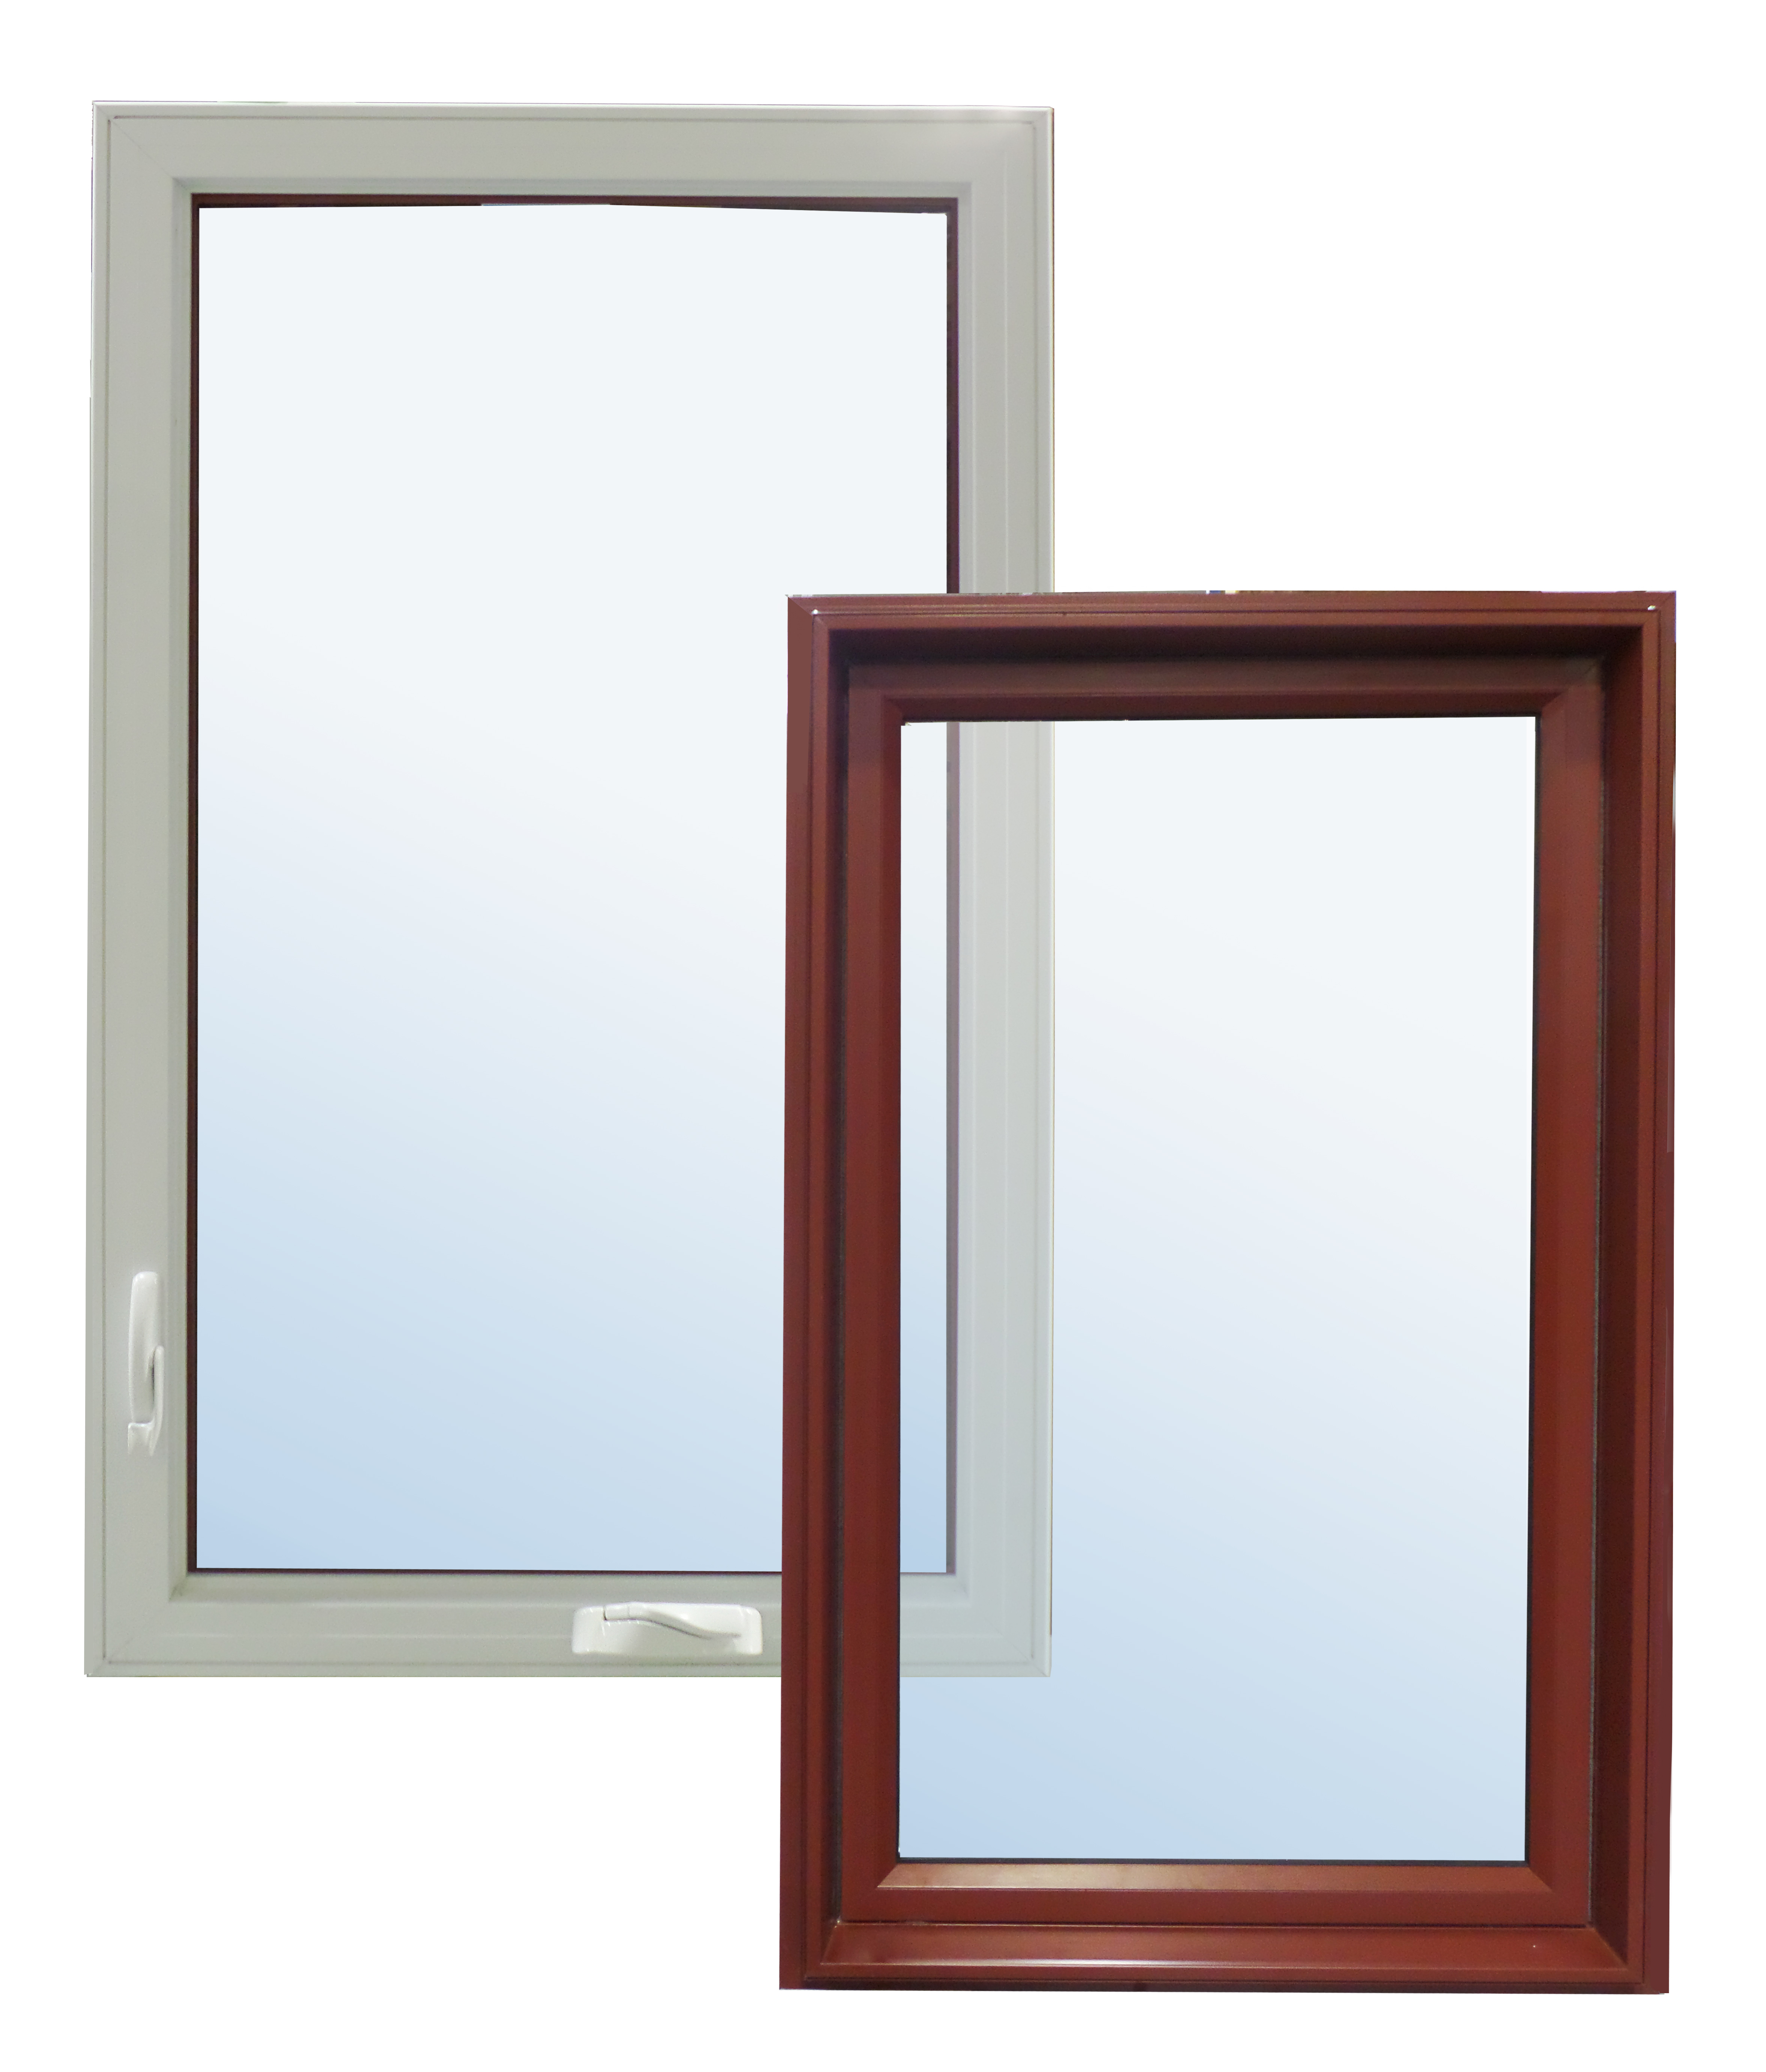 Fiberglass Casement Windows Fibertec Fiberglass Windows